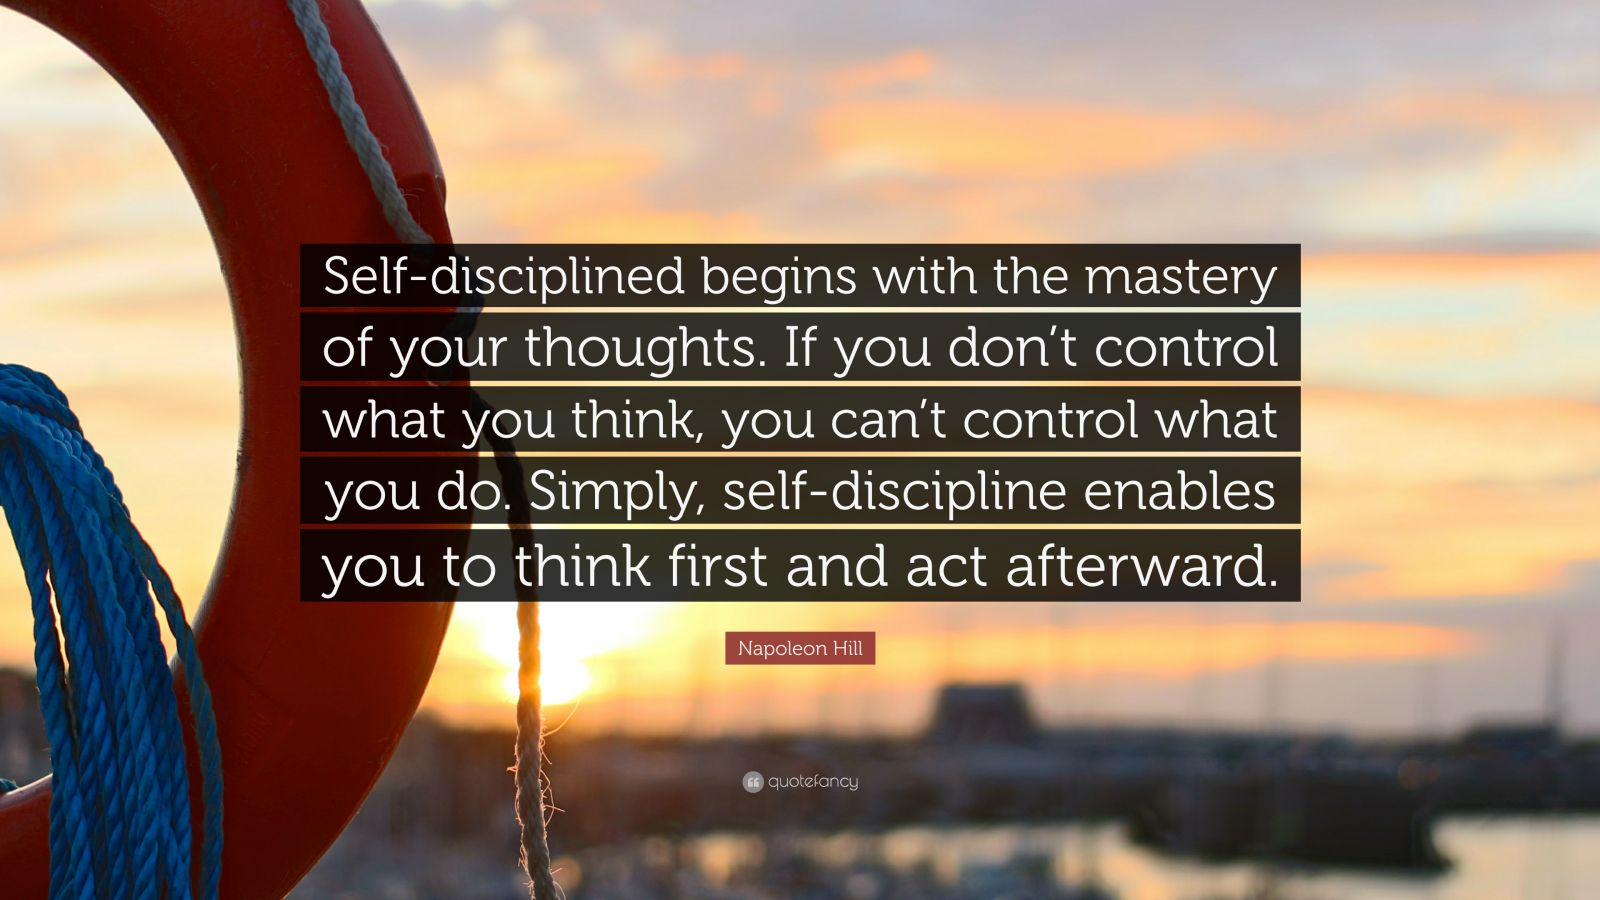 Persistence Quotes Wallpapers Napoleon Hill Quote Self Disciplined Begins With The